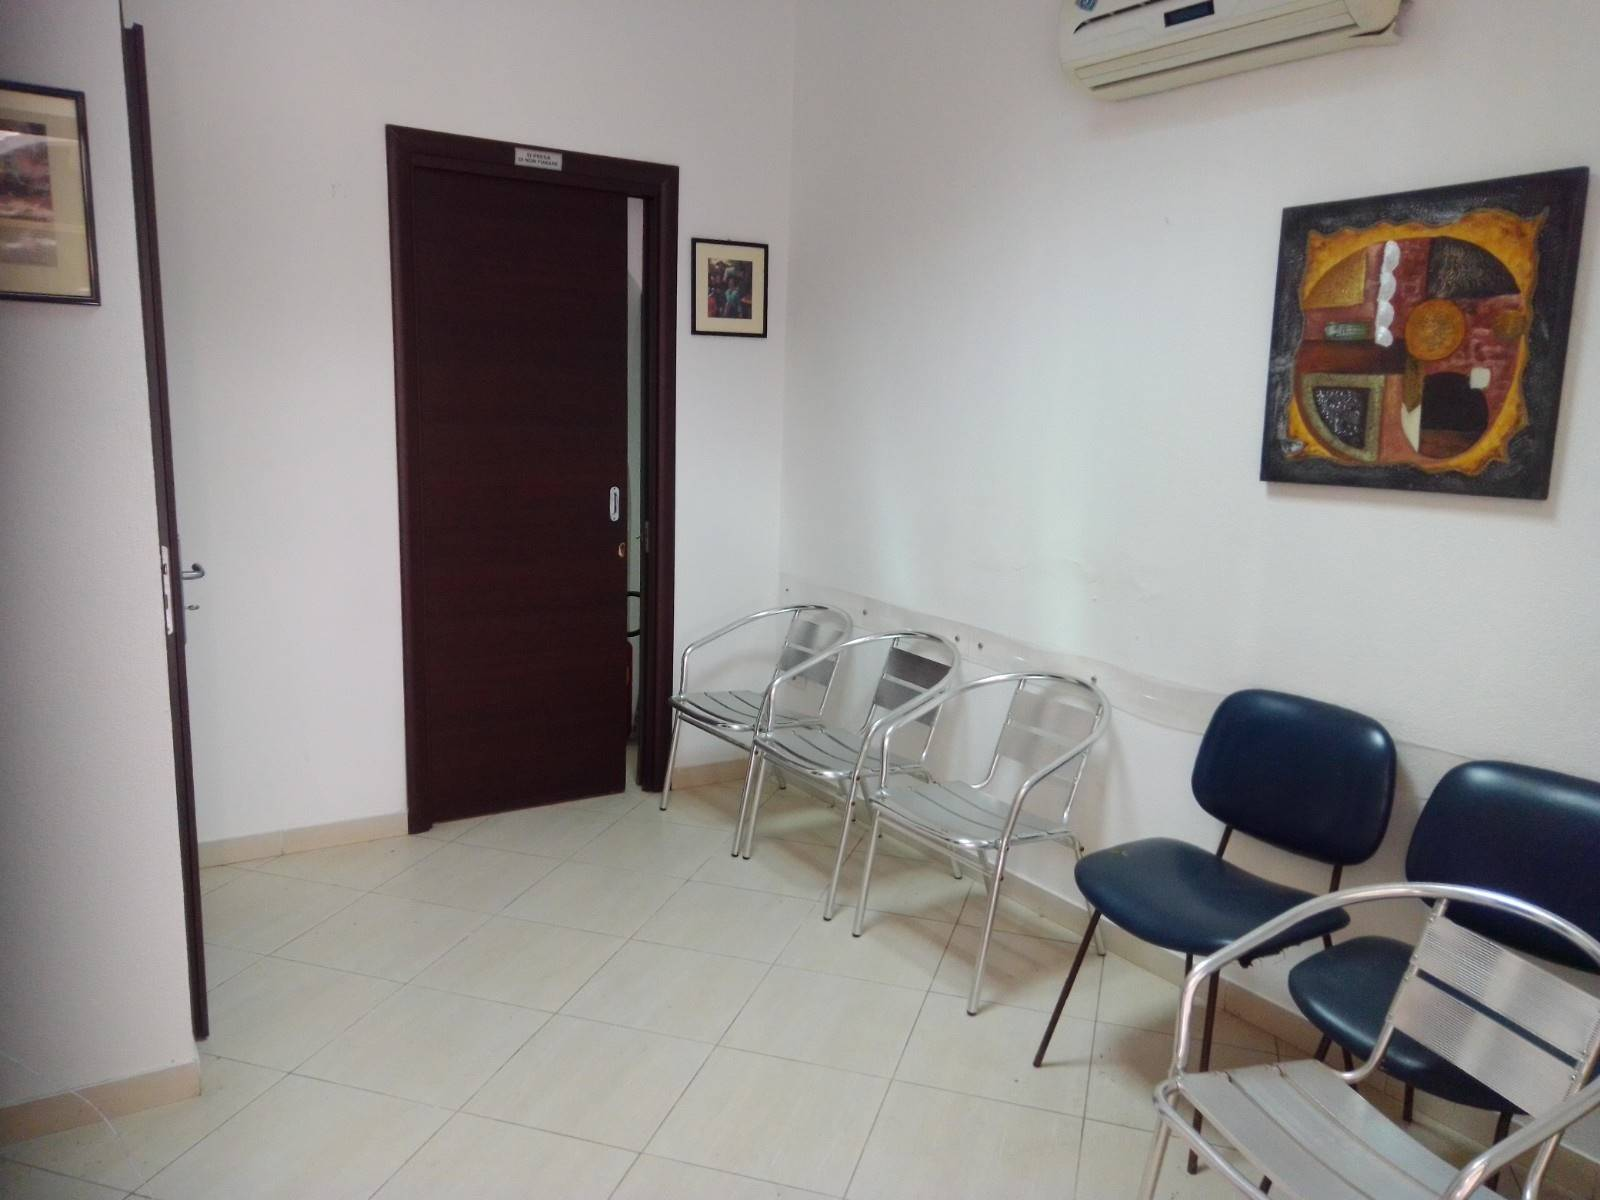 CENTRO, LICATA, Office for rent of 50 Sq. mt., Good condition, Energetic class: G, placed at Ground, composed by: 4 Rooms, 1 Bathroom, Price: € 3,300